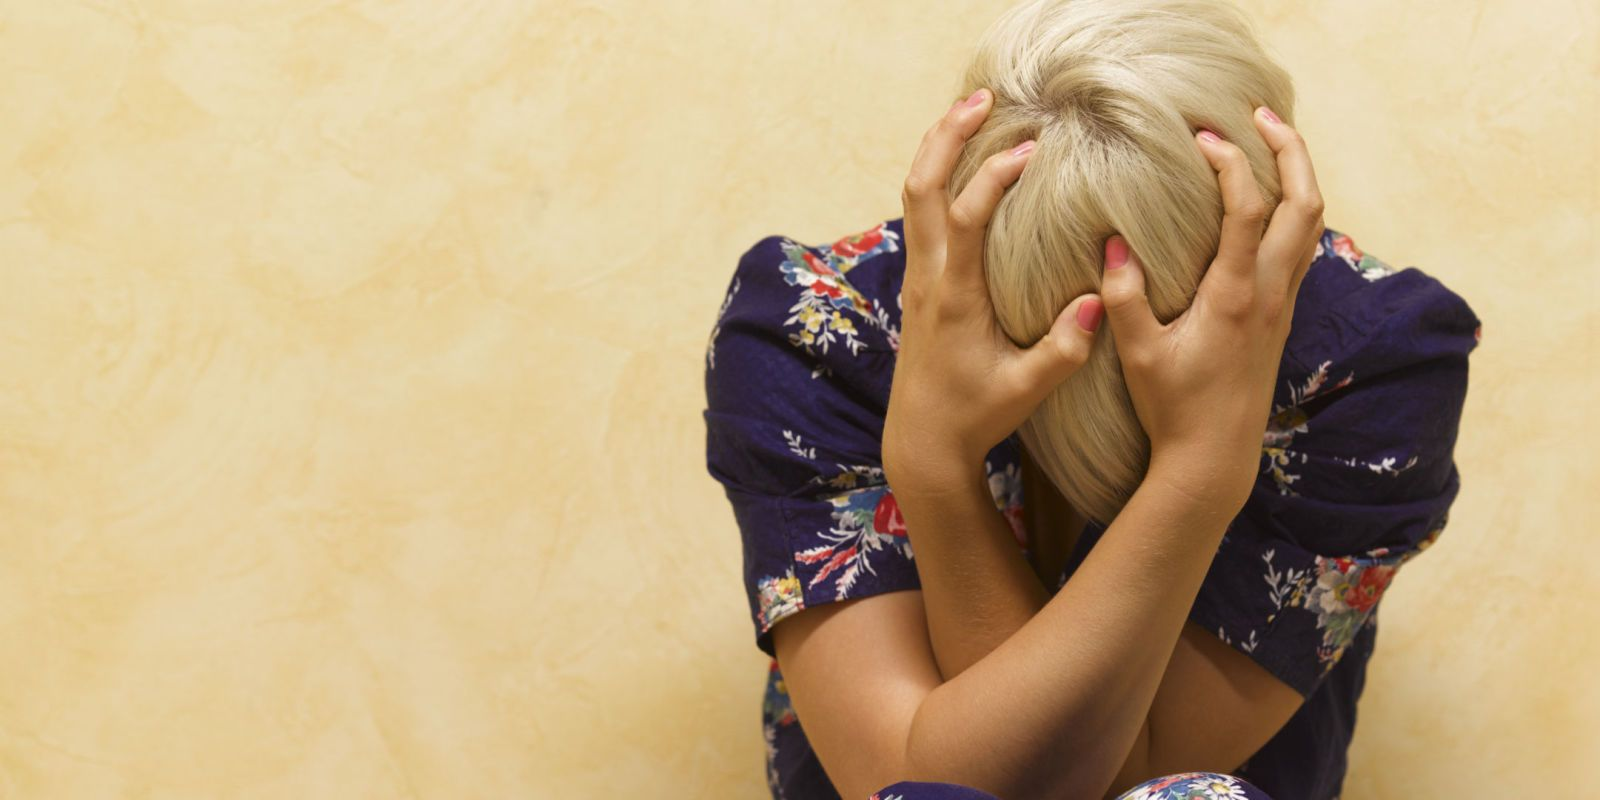 14 Struggles Only Women With Anxiety Will Understand